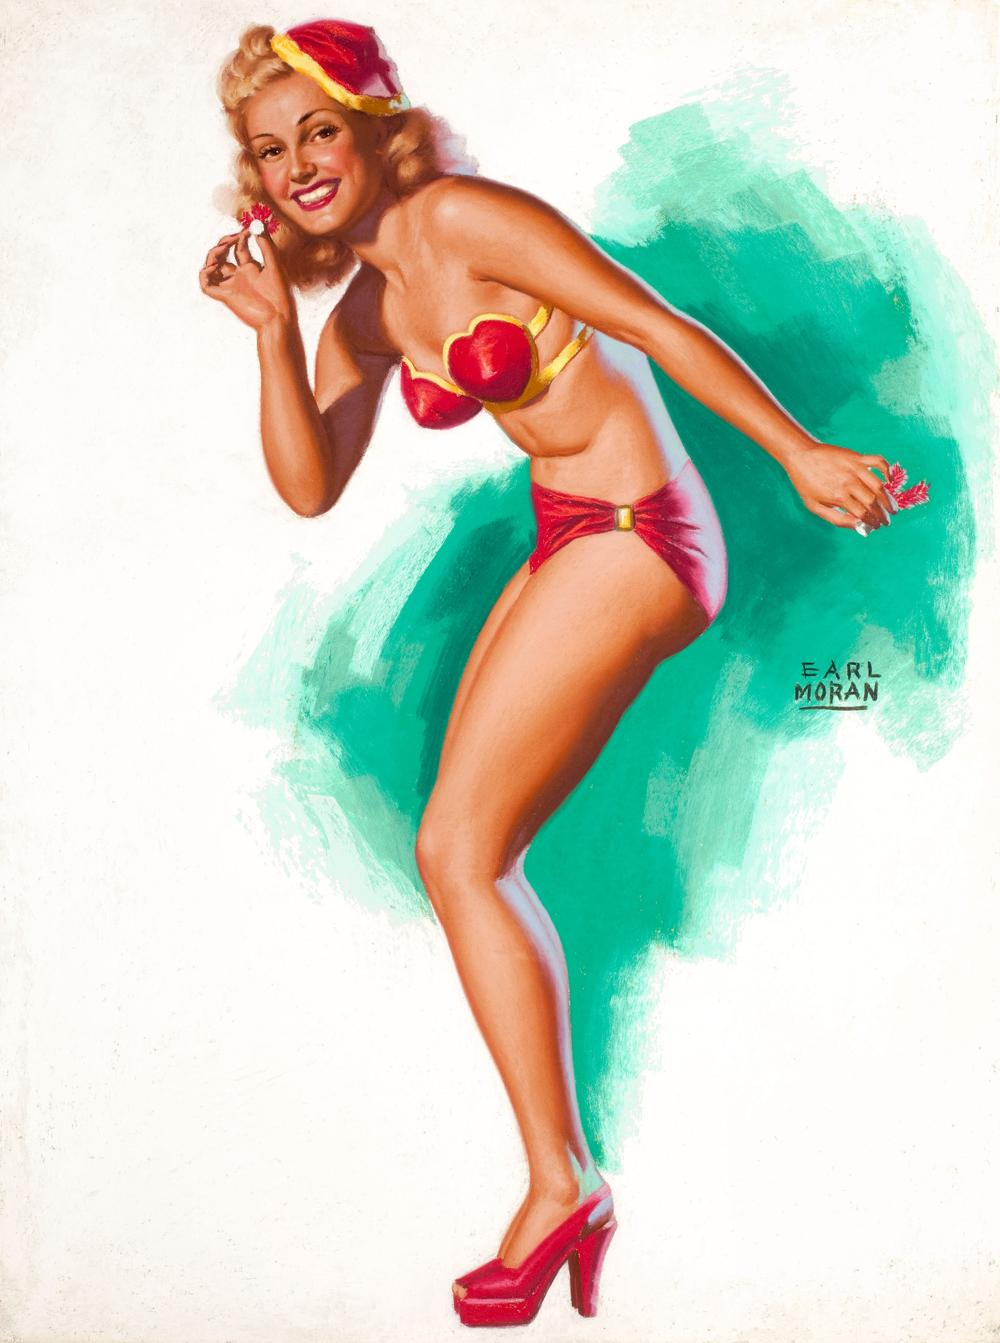 Earl Moran Christmas Pin-Up